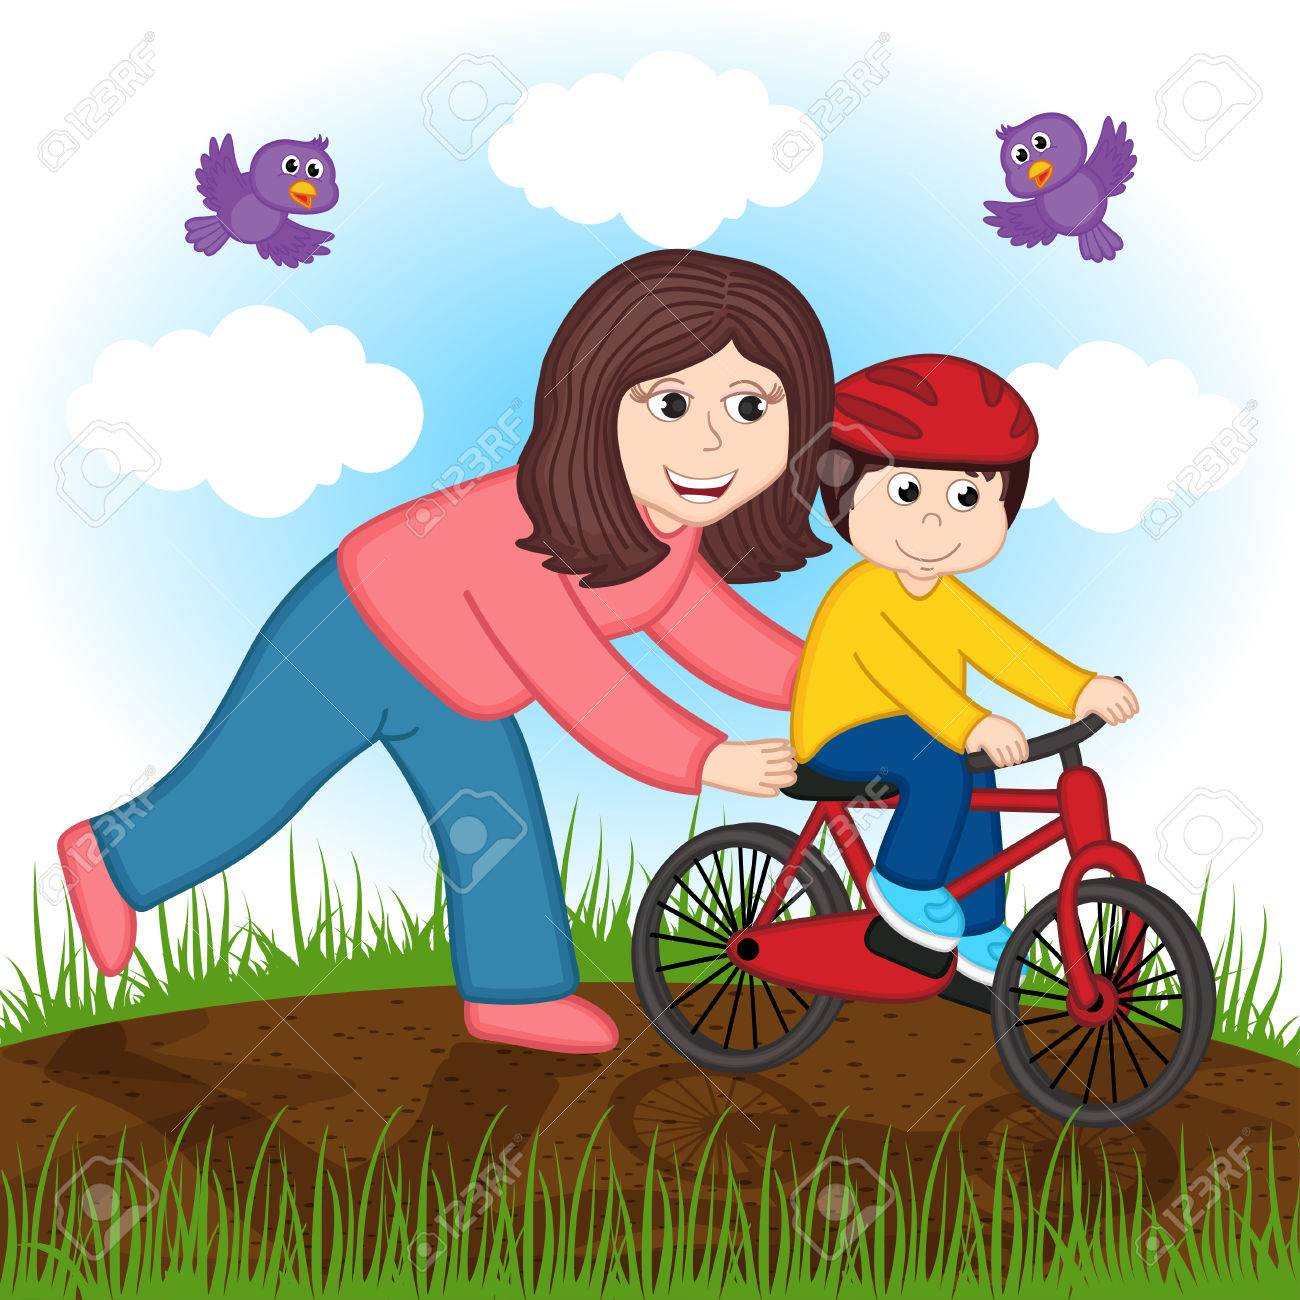 mother teaches a child to ride a bike - 61619392